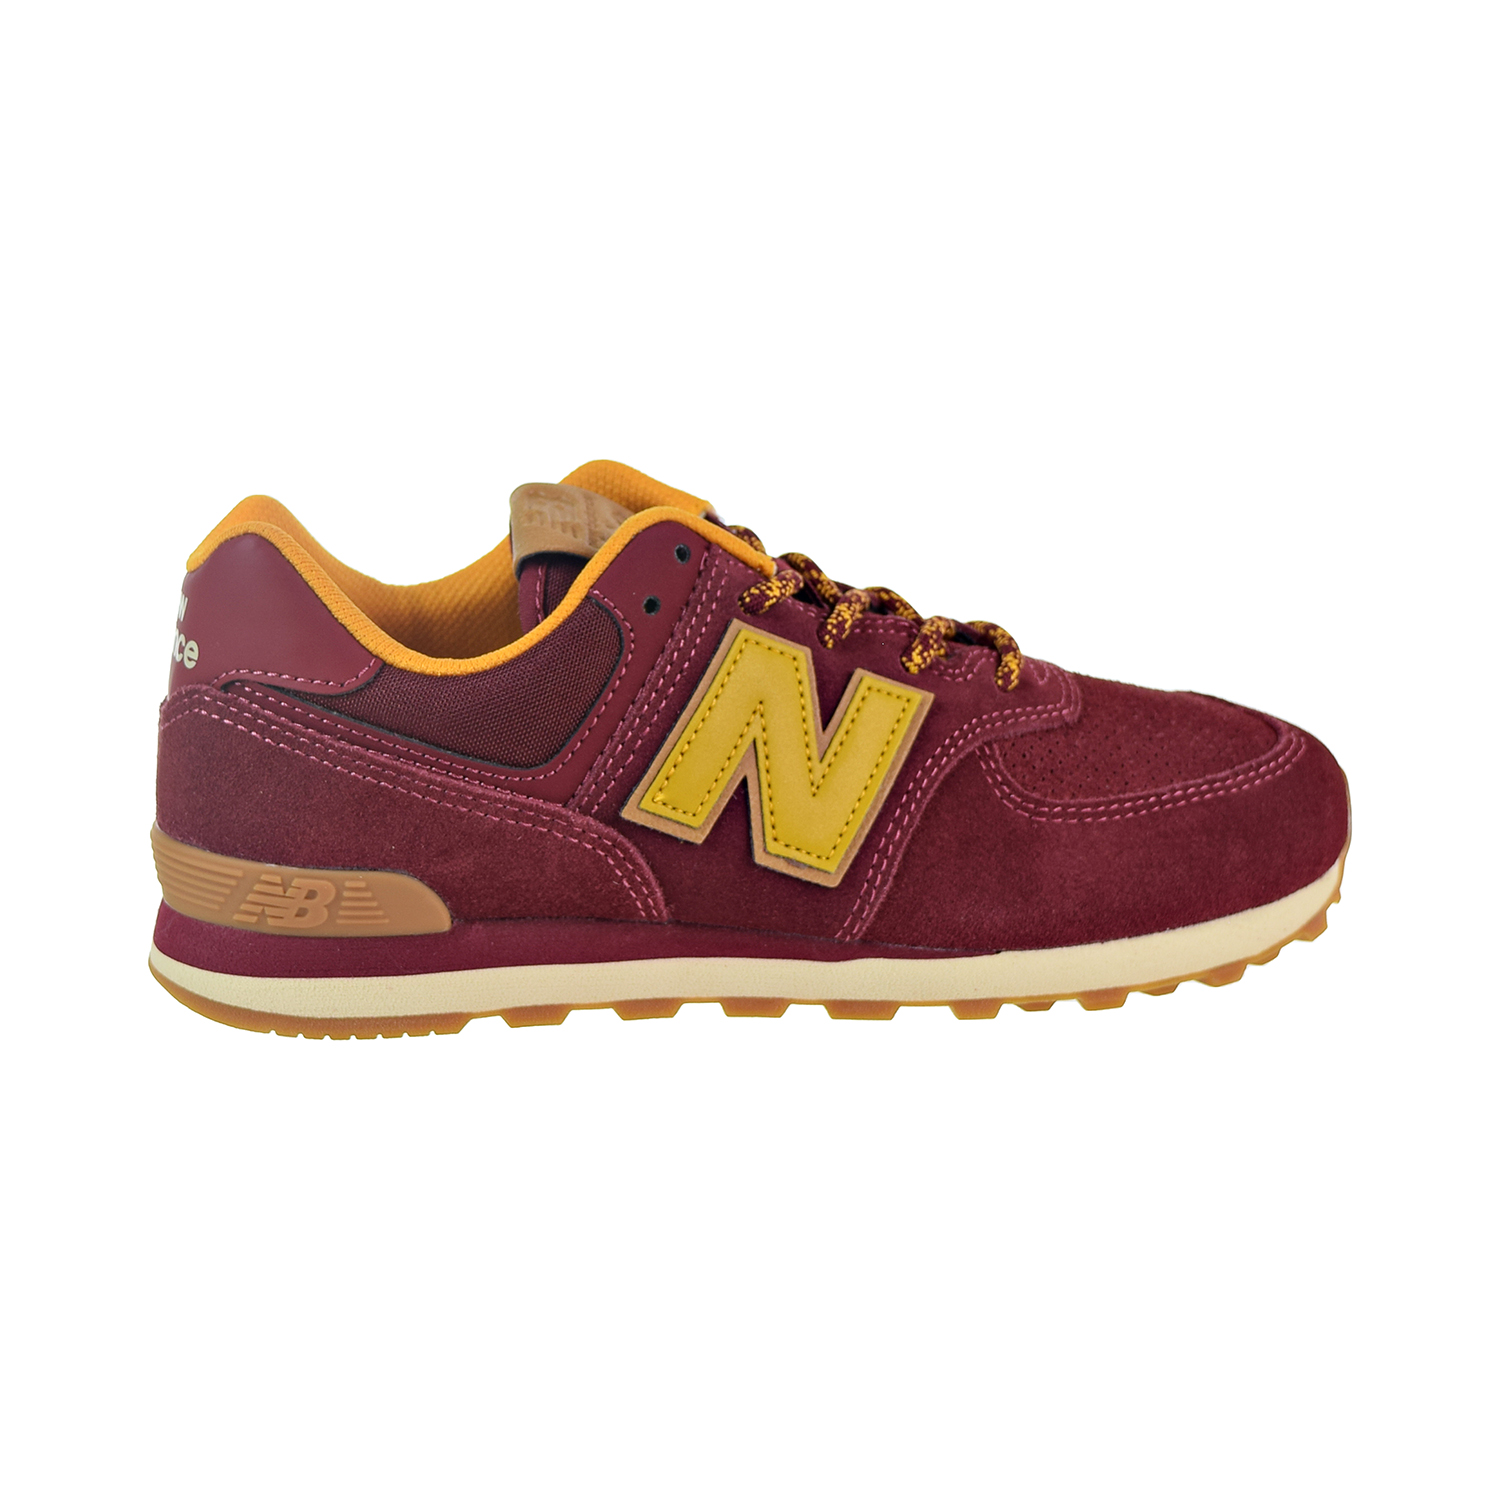 b7c123cf399 Details about New Balance 574 Suede Big Kids' Shoes Mercury Red/Gold Rush  GC574-TM